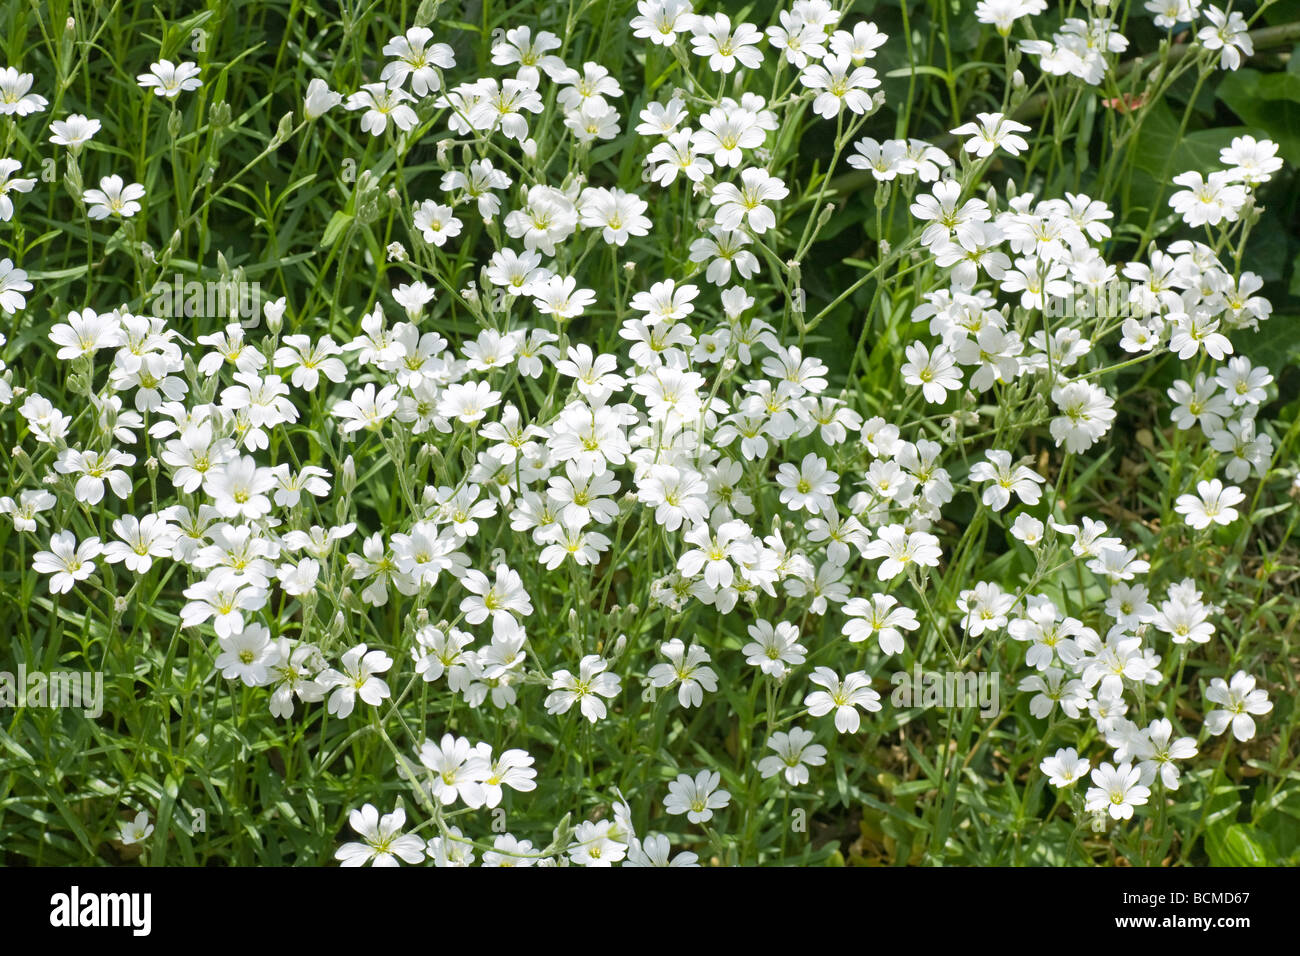 White Flowers On Flower Bed In Spring Park Background Stock Photo